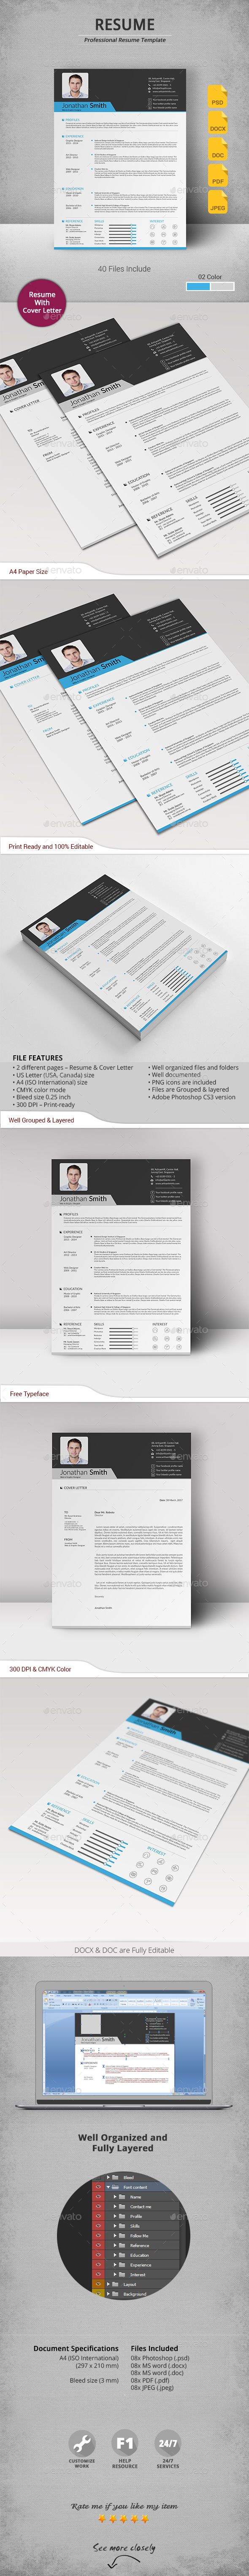 hairdresser resume%0A Buy Resume by artisanHR on GraphicRiver  Resume The Resume is designed as  simple impact and clean format for complete professional work